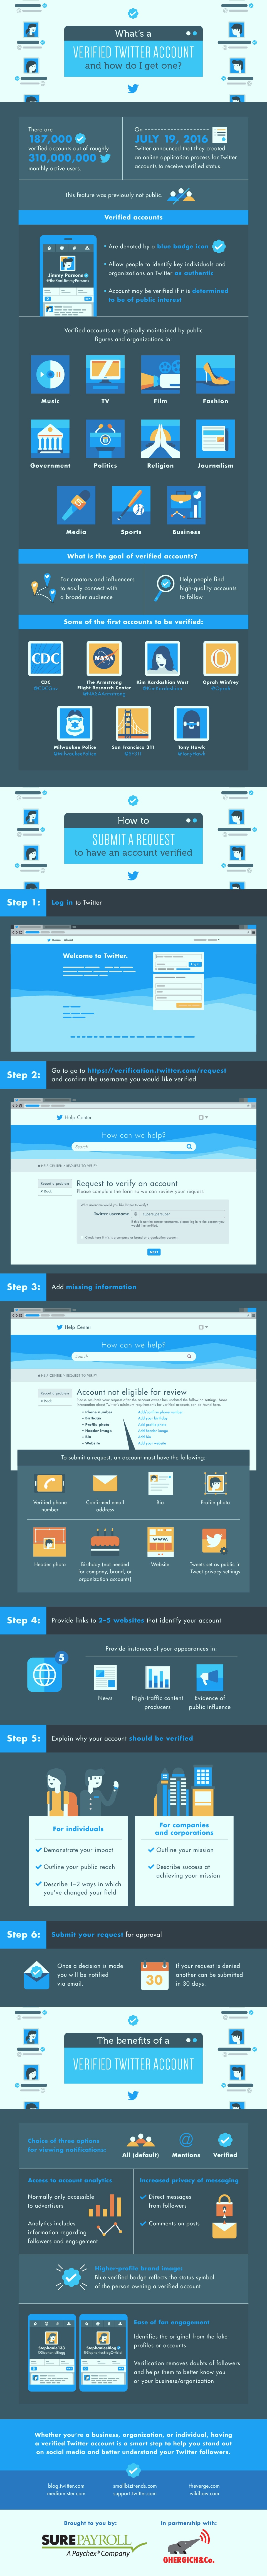 how-to-get-verified-on-twitter-account-infographic